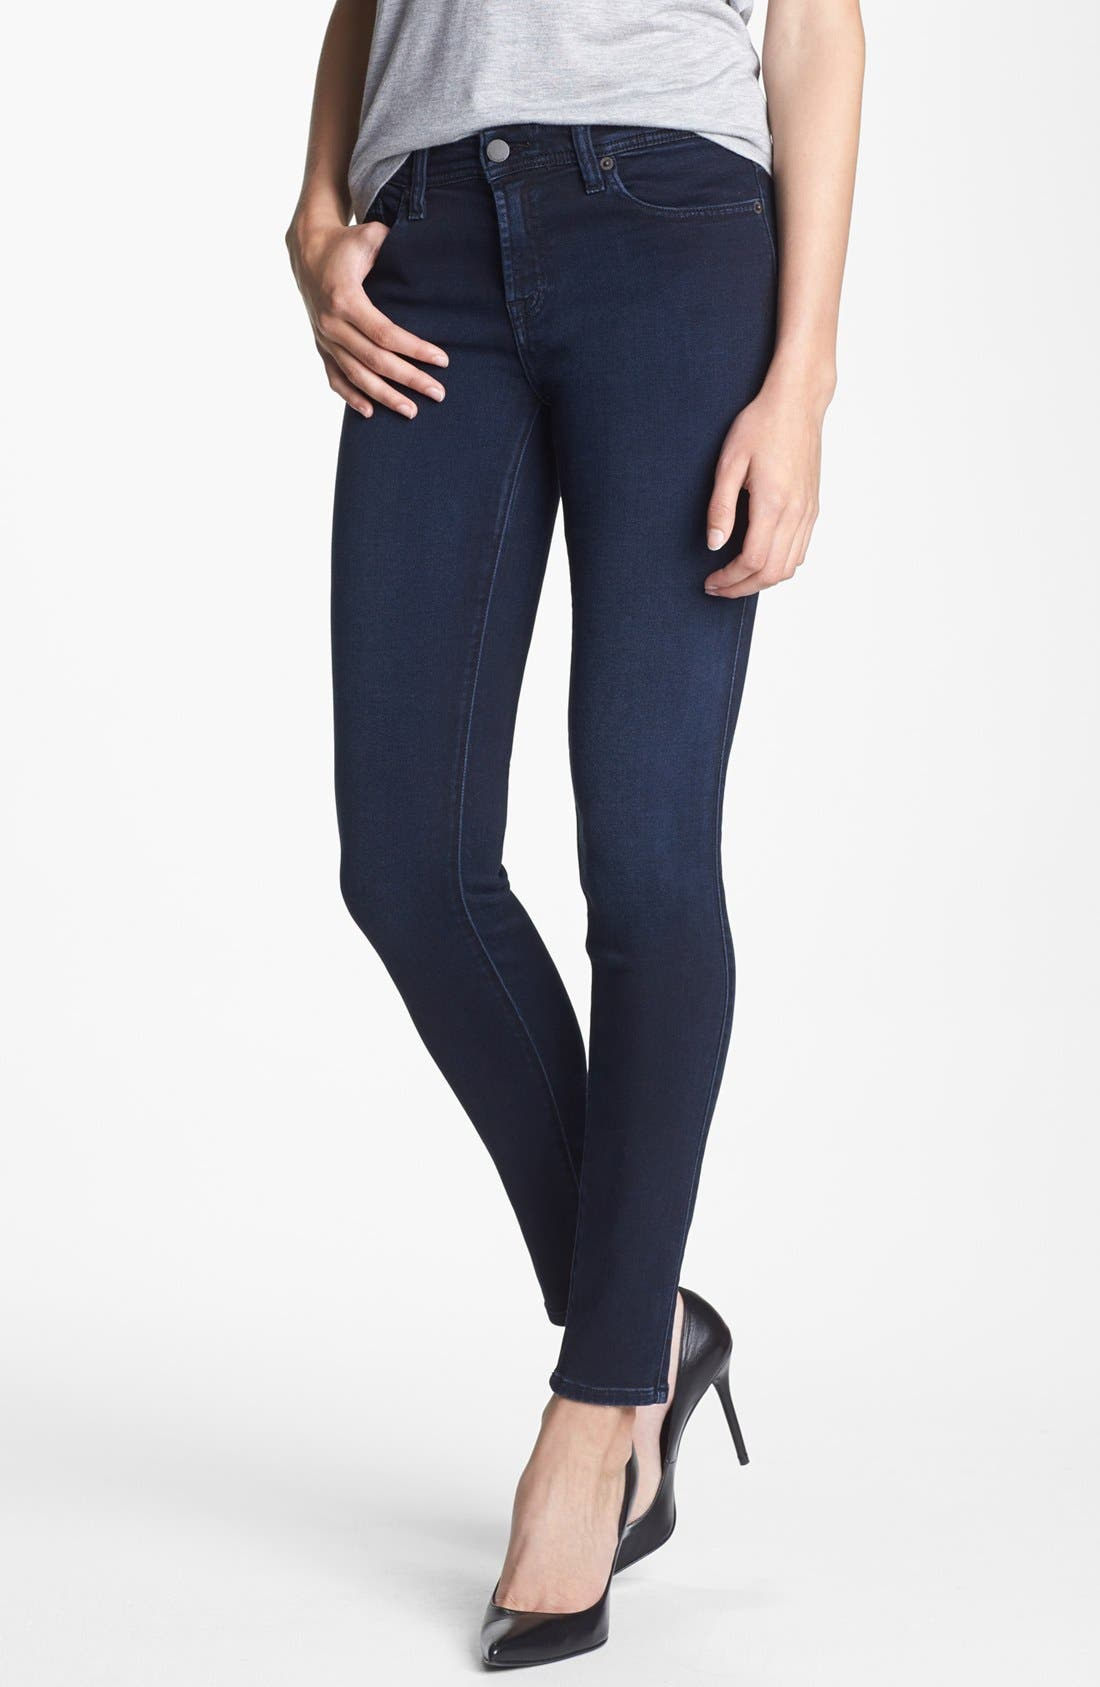 GENETIC 'The Stem' Mid Rise Skinny Jeans, Main, color, 405